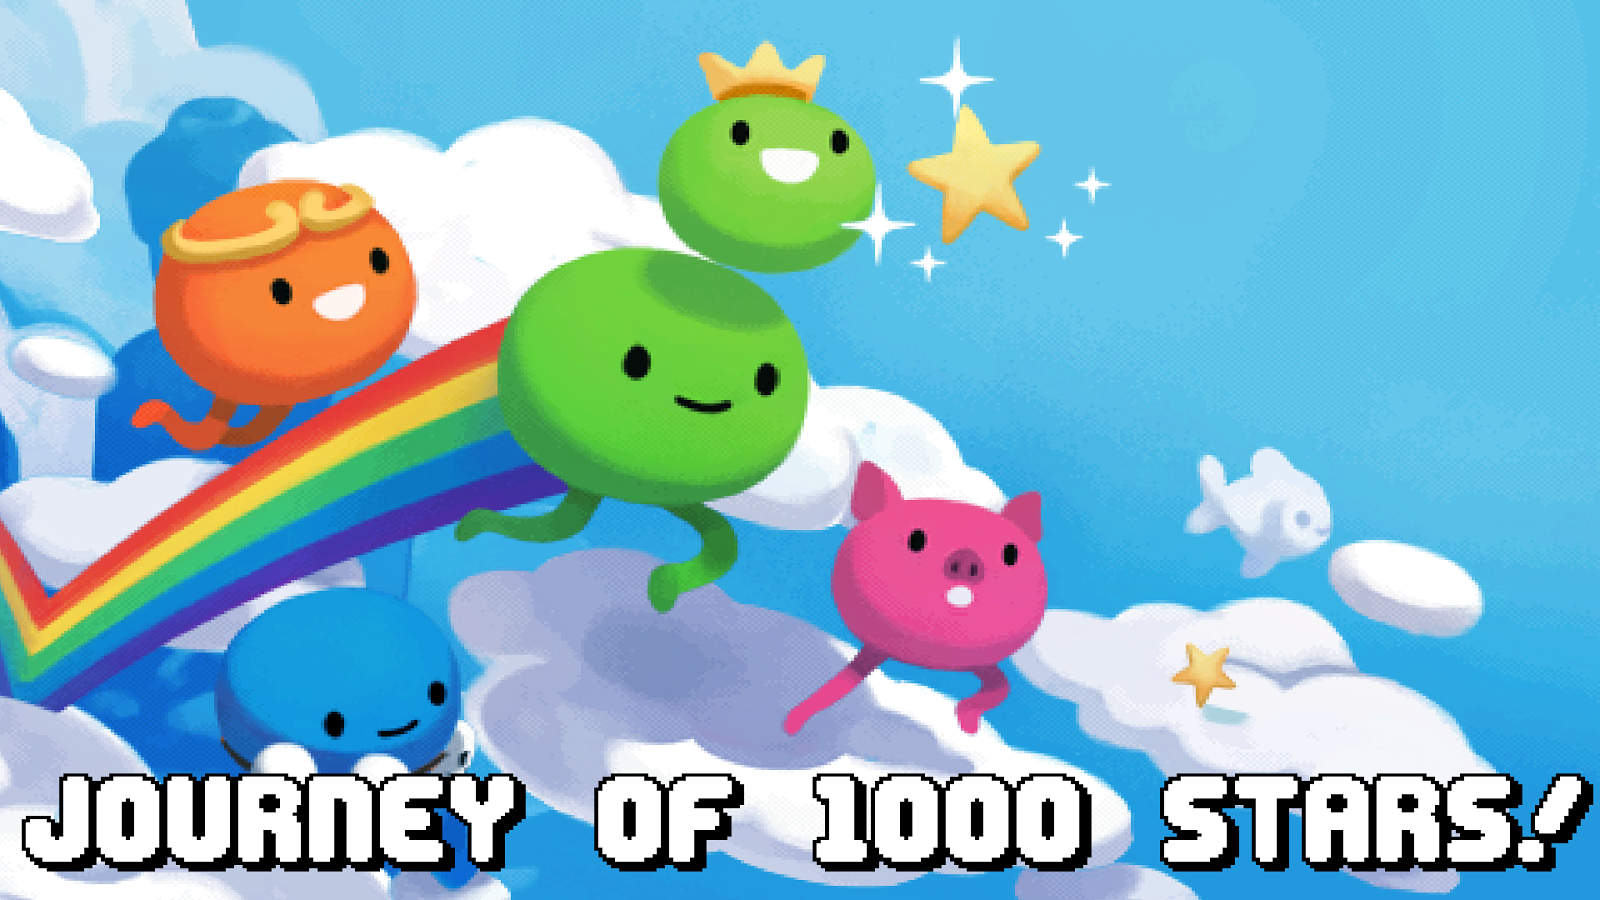 Journey of 1000 Stars Screenshot 0